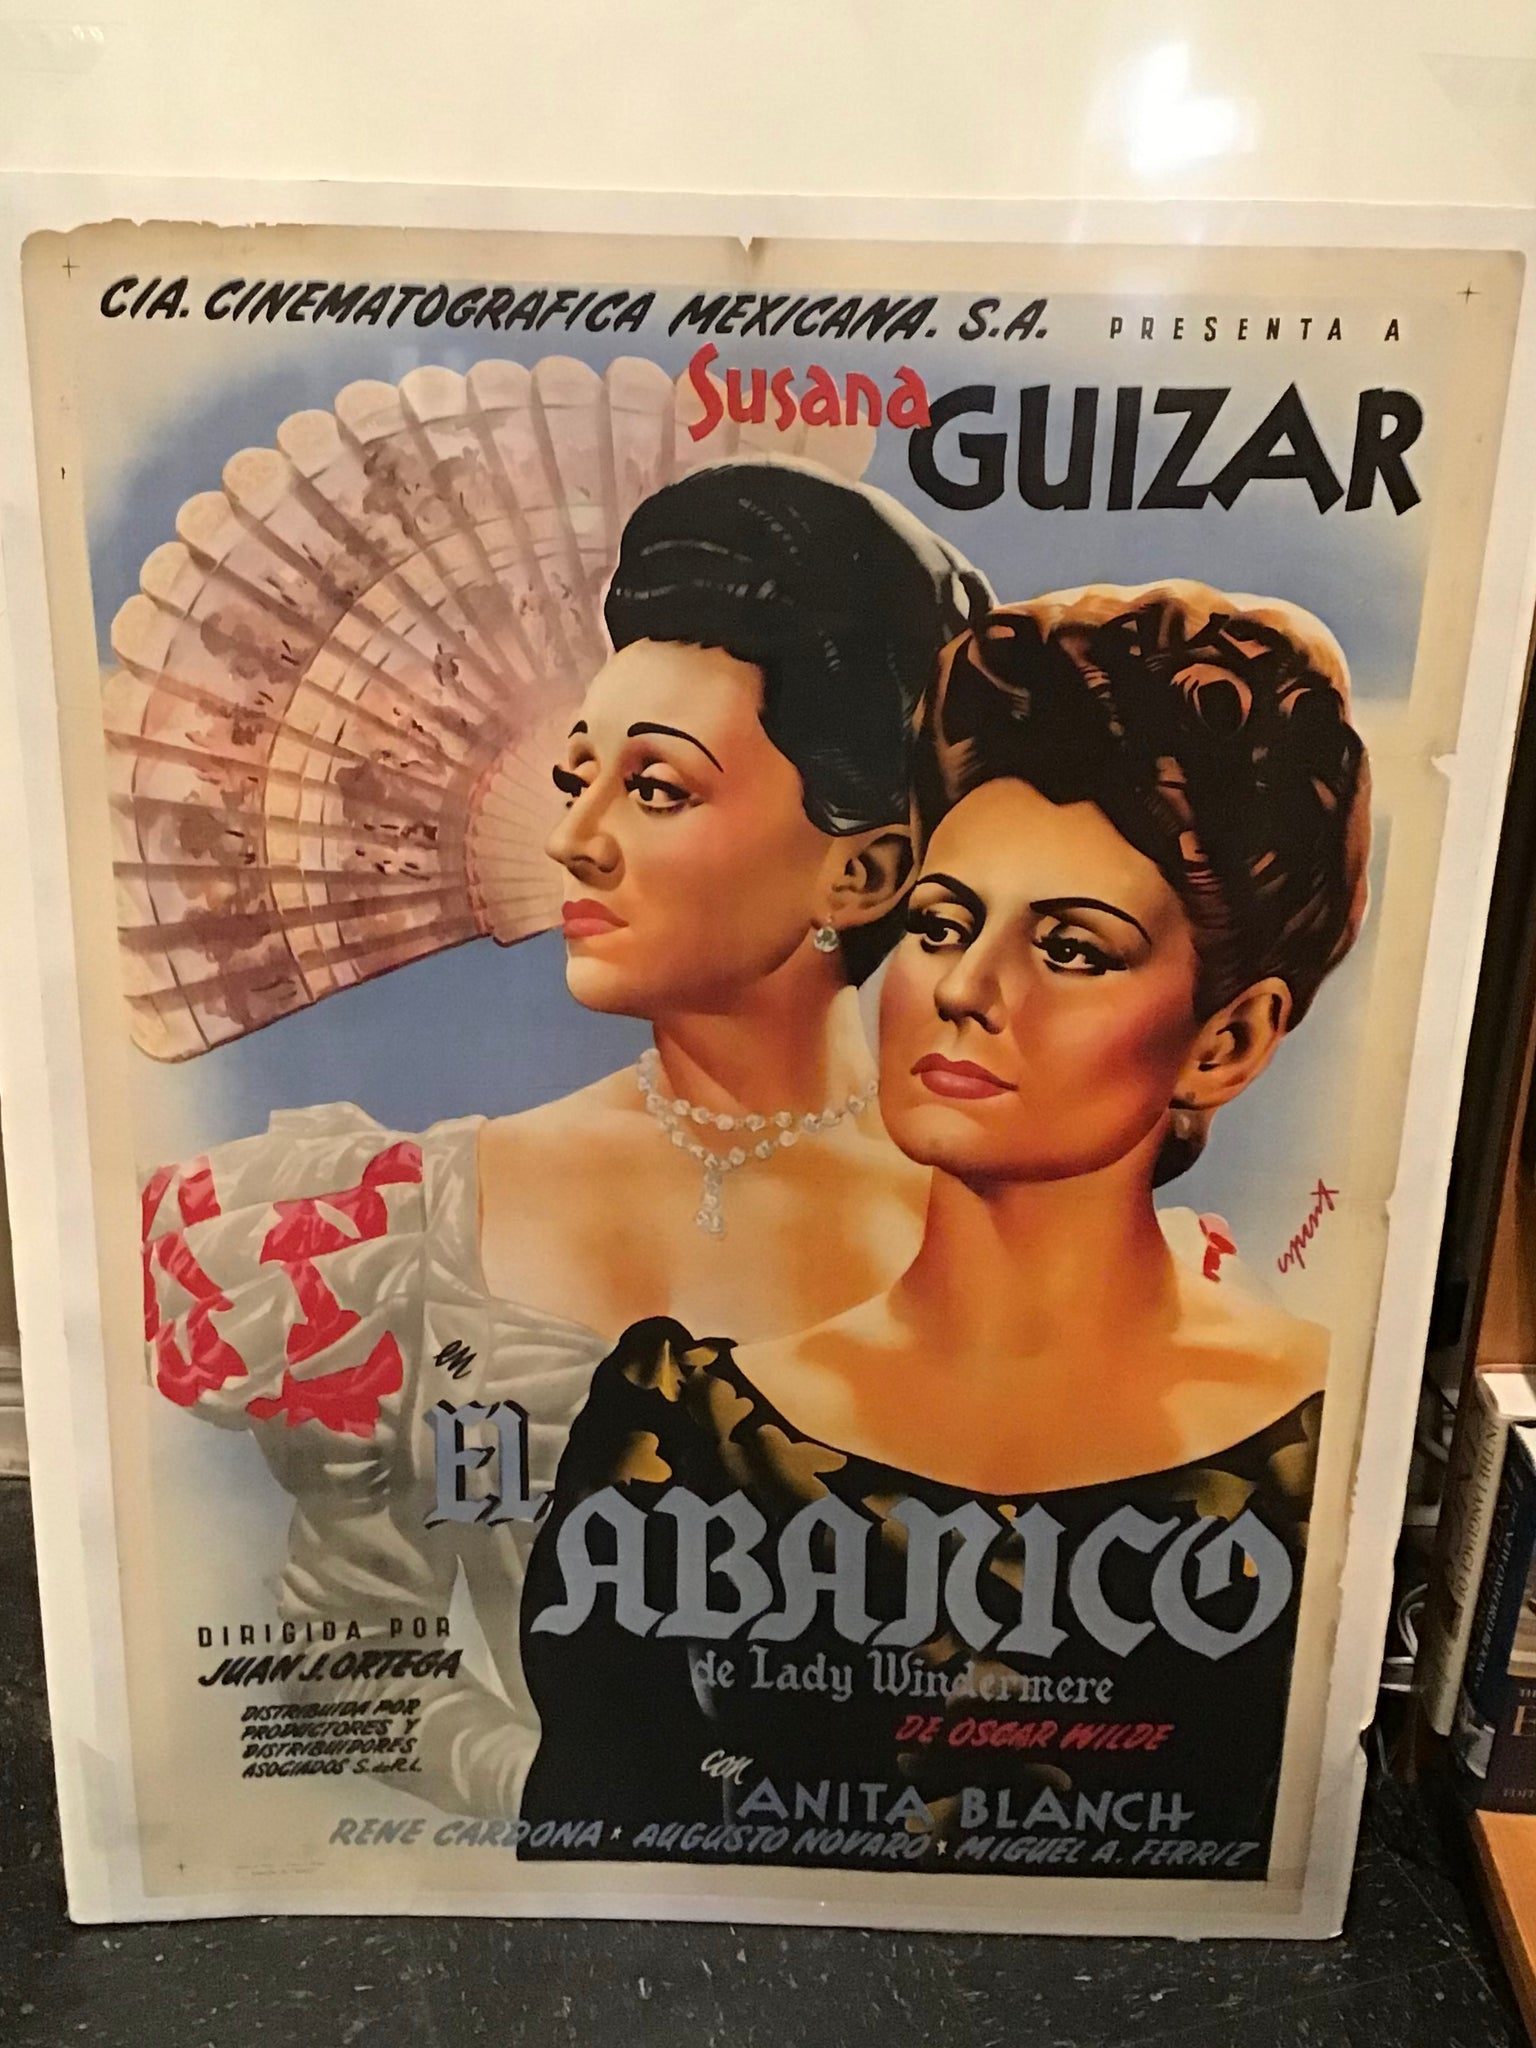 El Abanico de Lady Windermere (Lady Windermere's Fan) Movie Poster